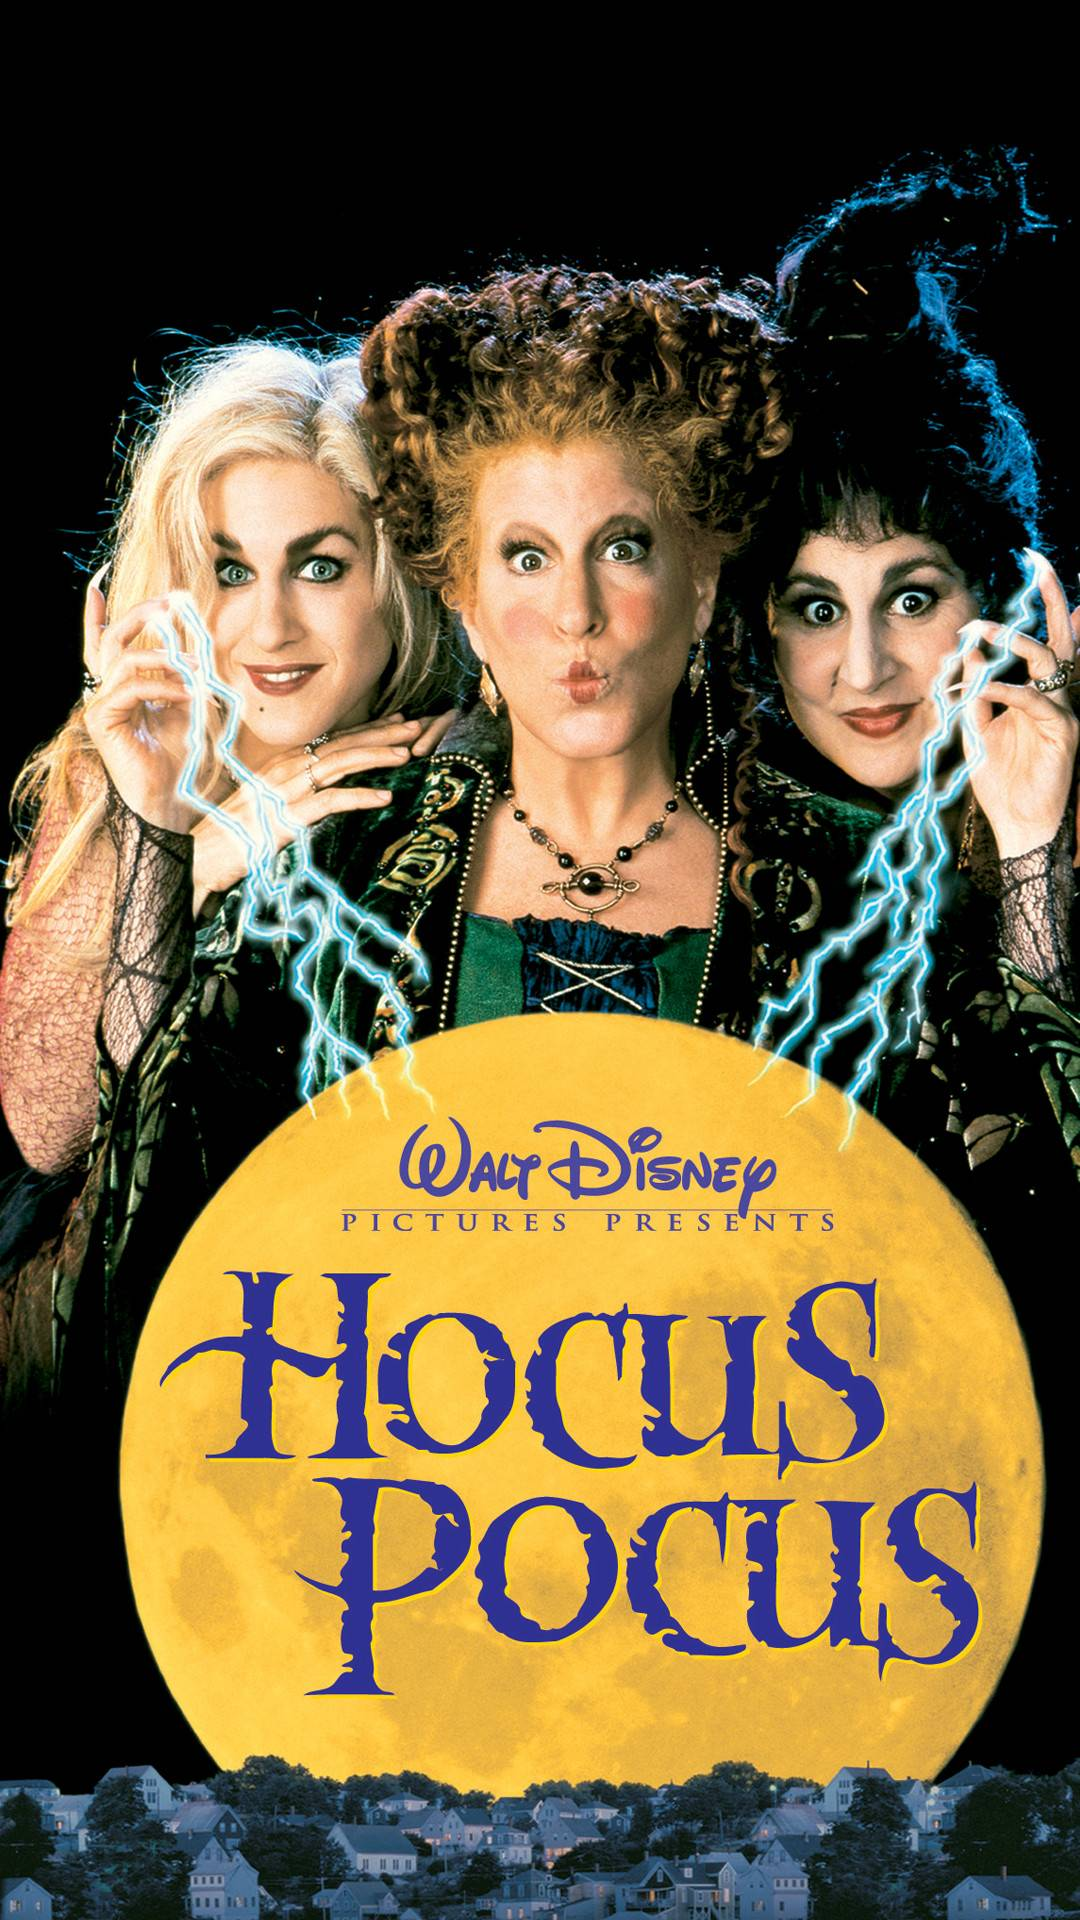 Halloween Half Term Film Screening: Hocus Pocus